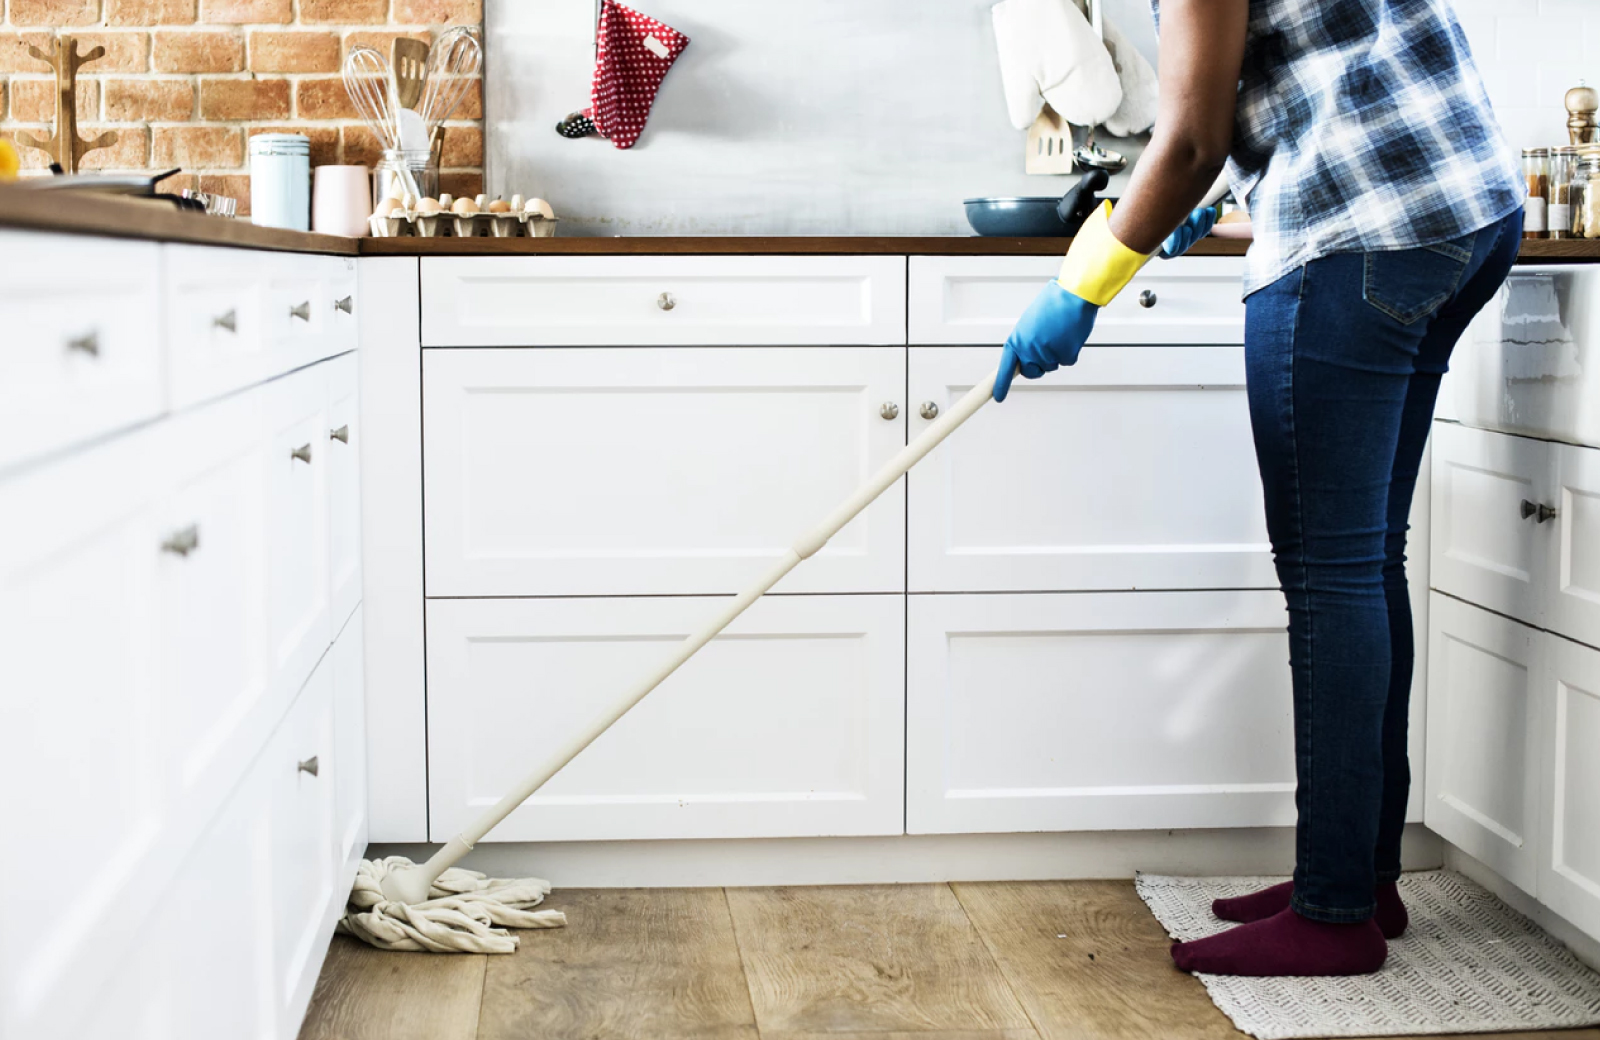 legs of a woman mopping the kitchen floor with green cleaning tools near white cabinets - The Waypointe